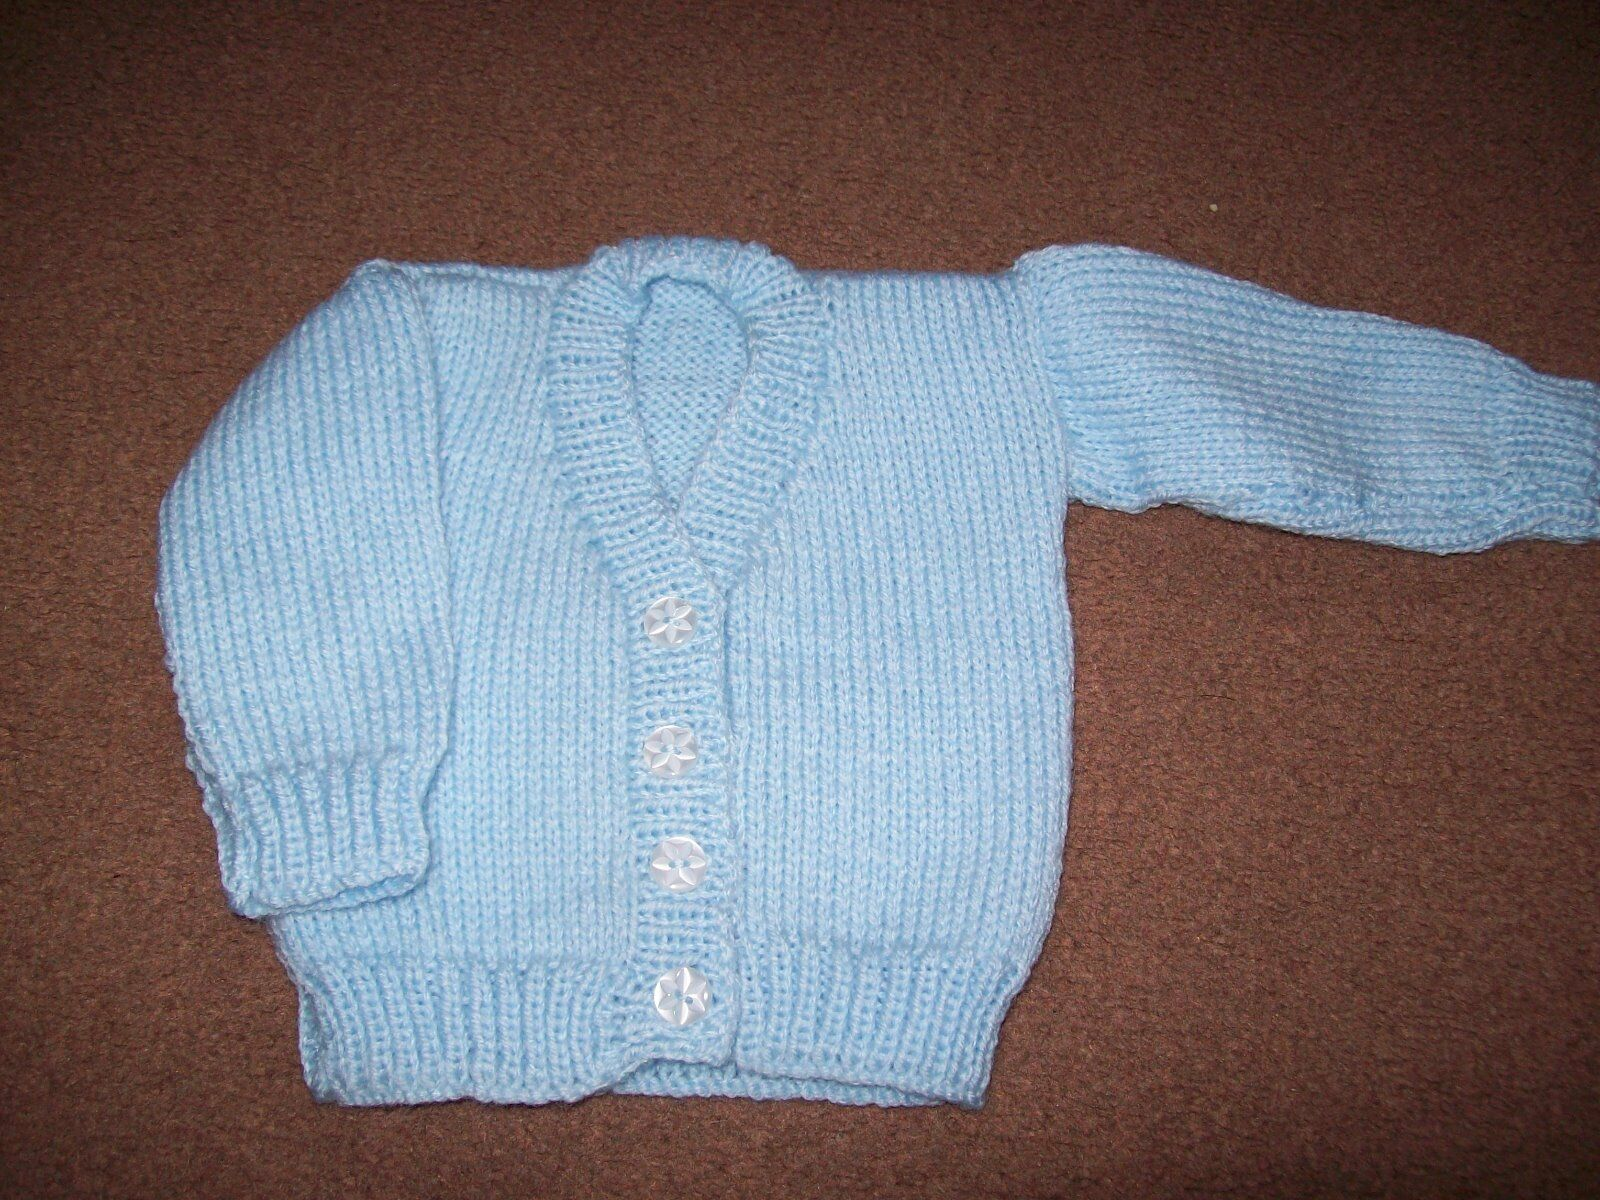 Knitting Pattern Cardigan For 18 Months : Babies Hand Knitted Blue Cardigan Age 0/3 Months   ?2.00 - PicClick UK